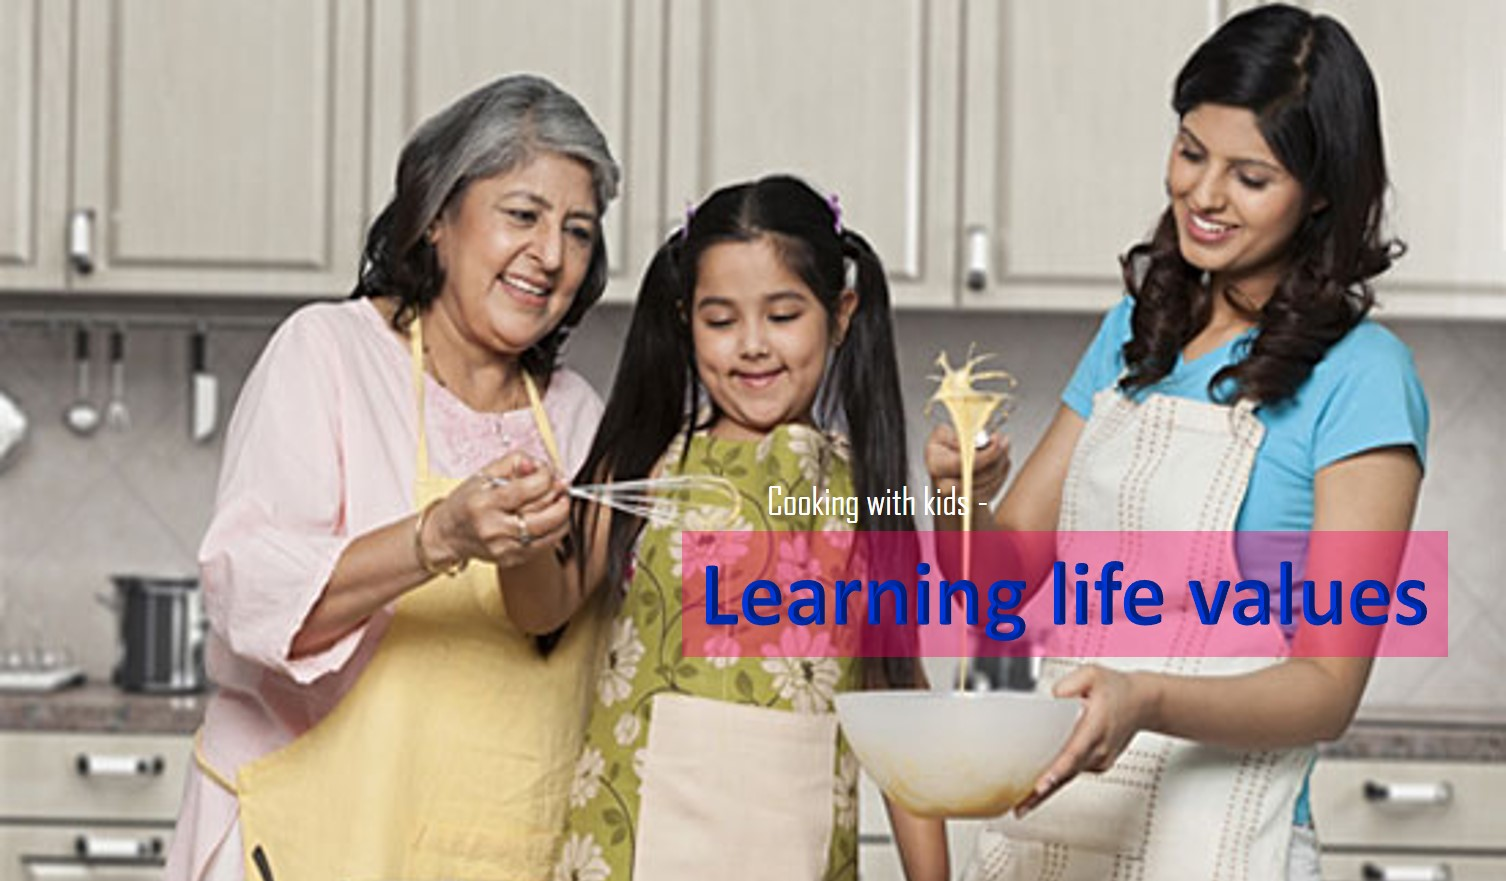 Learning life values while cooking